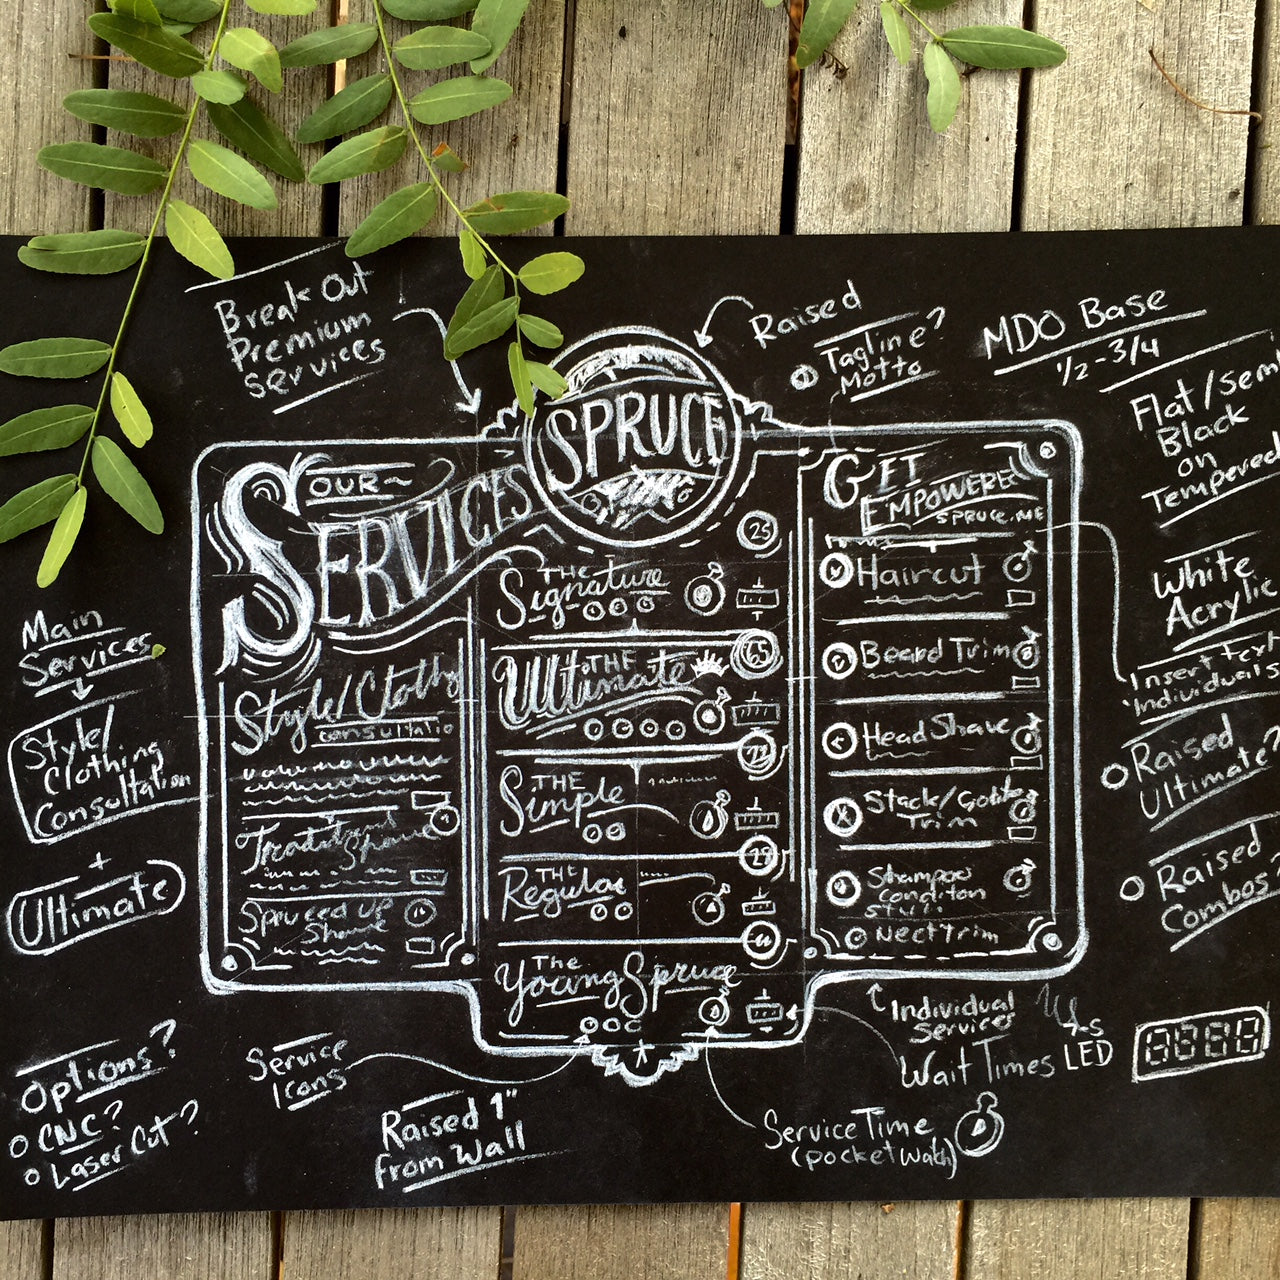 First hand drawn services menu concept